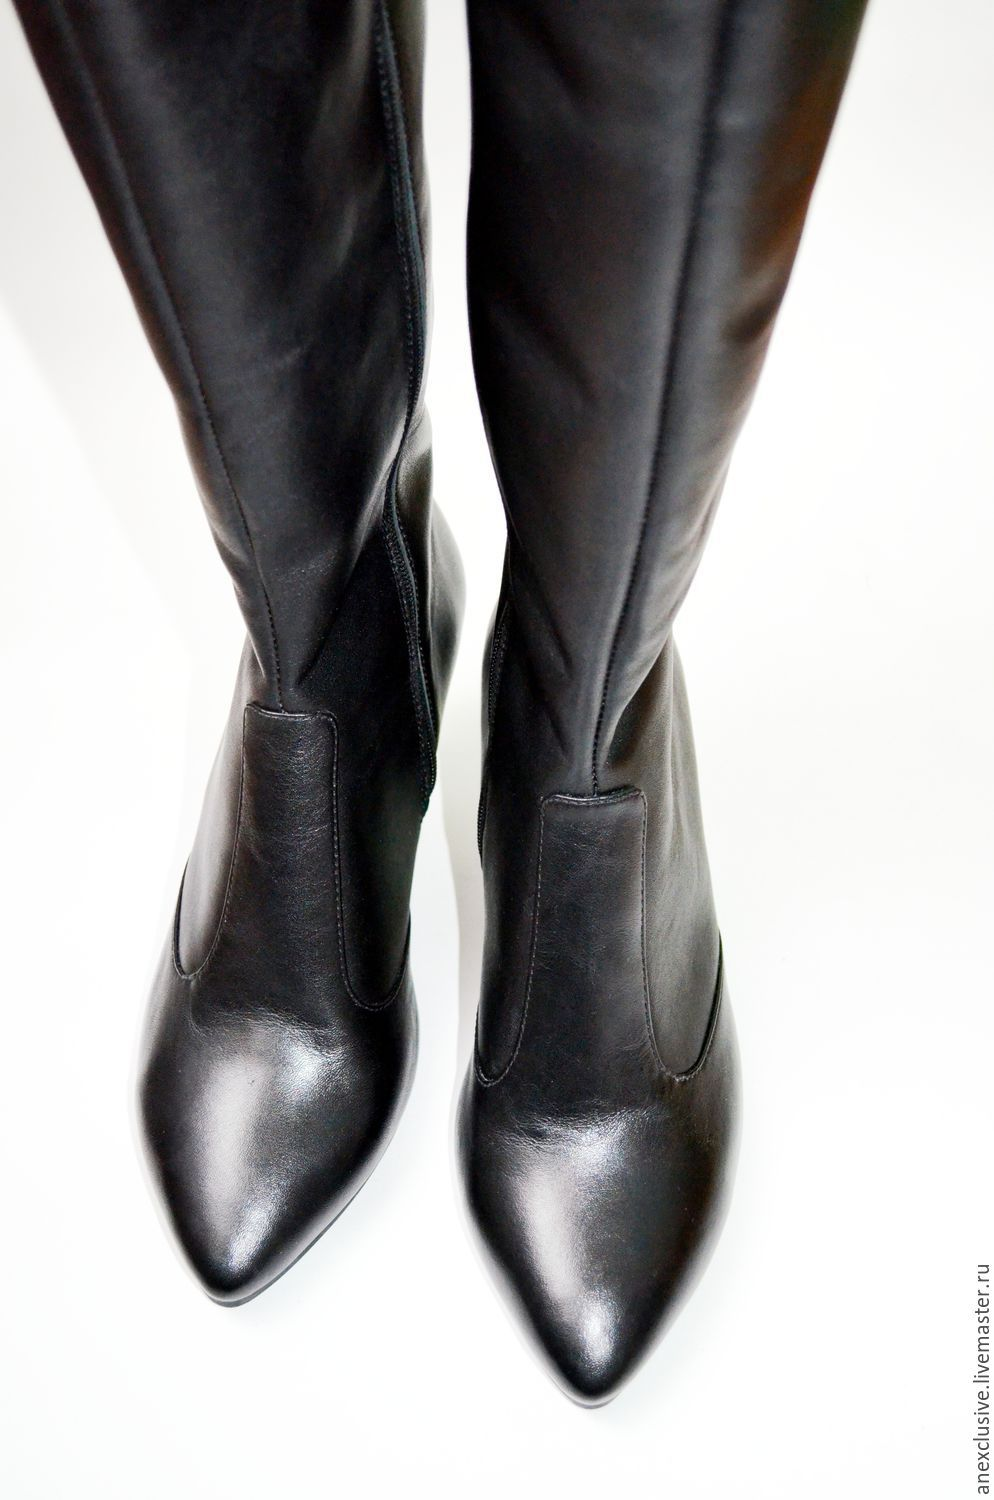 Boots 'Classic', High Boots, St. Petersburg,  Фото №1